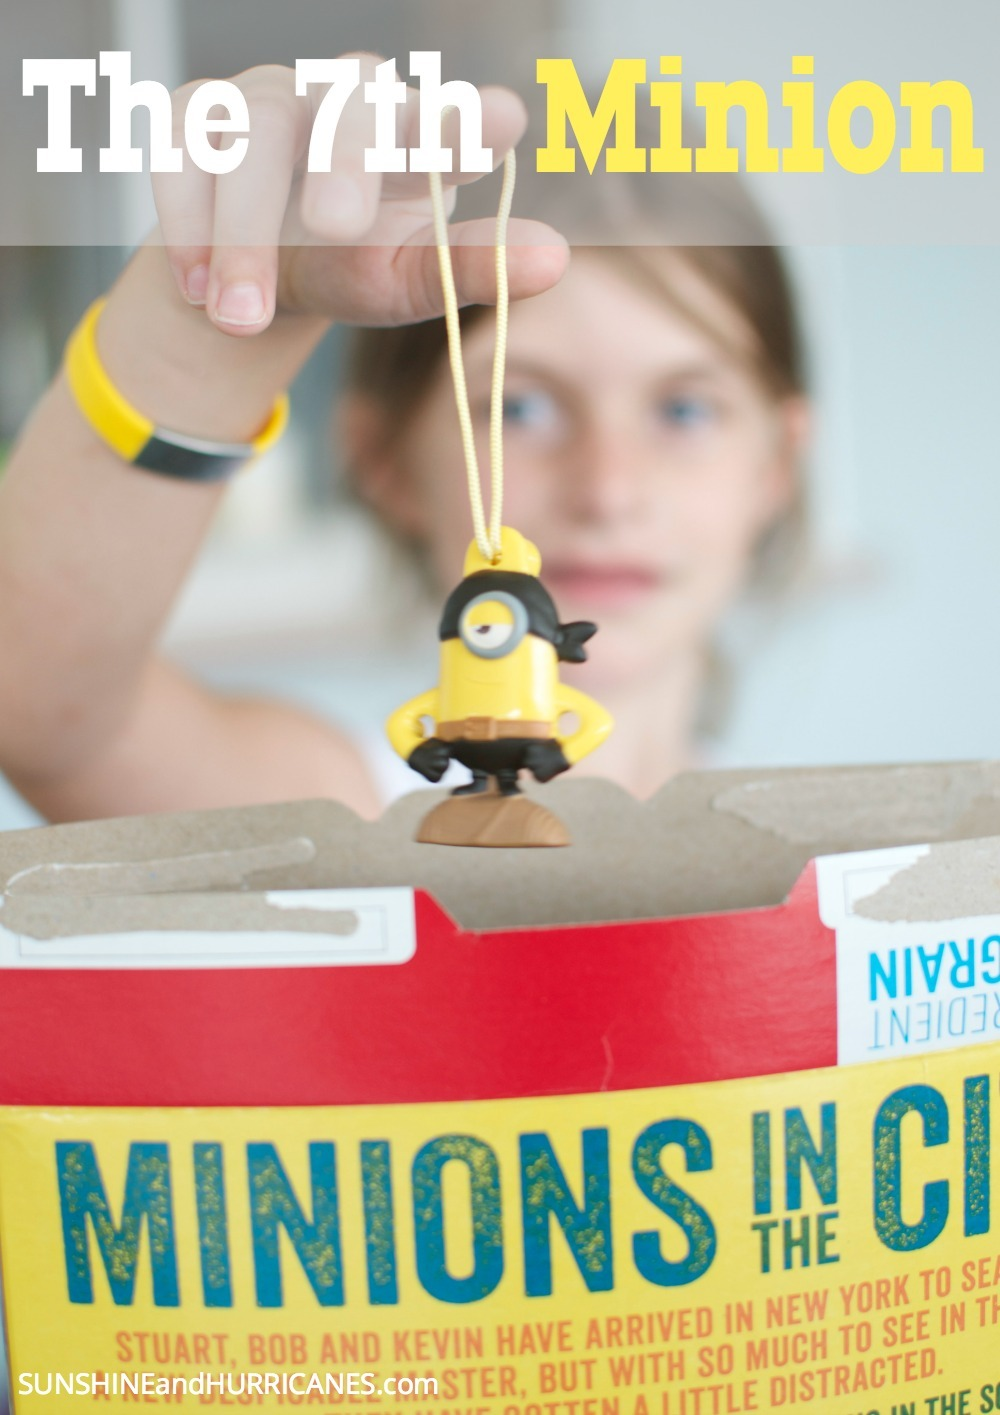 Are you a Minion Lover? Then you'll definitely want to collect all the adorable minions in specially marked boxes of family sized General Mills cereal at Walmart stores.  There is even a special prehistoric 7th Minion you won't find anywhere else! Happy Hunting. SunshineandHurricanes.com